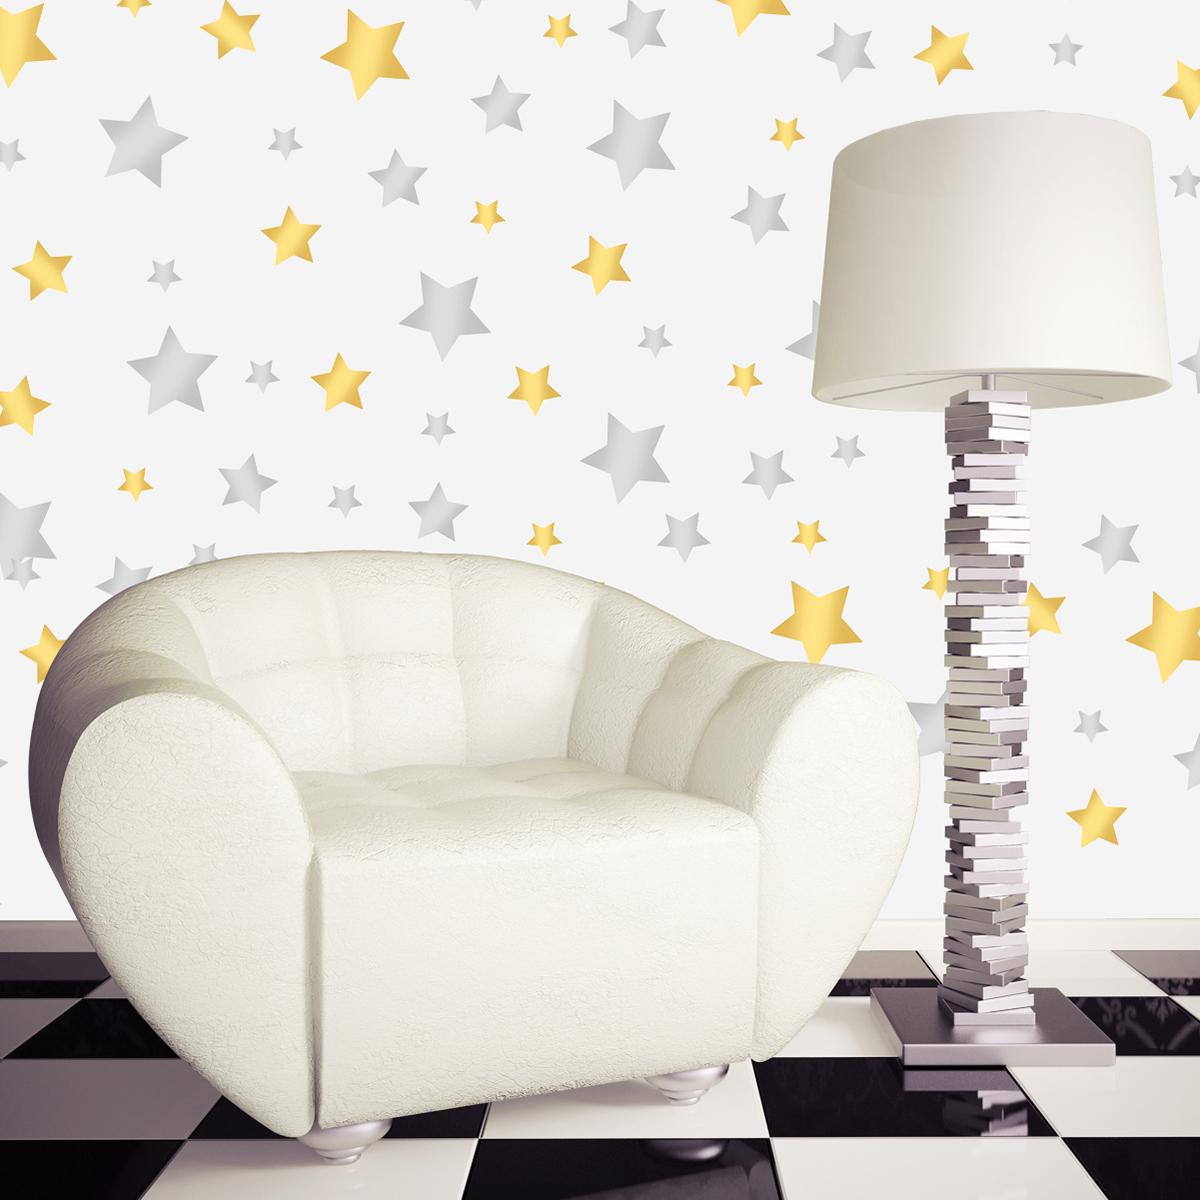 Removable Vinyl Stars Wall Sticker Window Sticker Home Nursery Room Kids Shop Art Decor